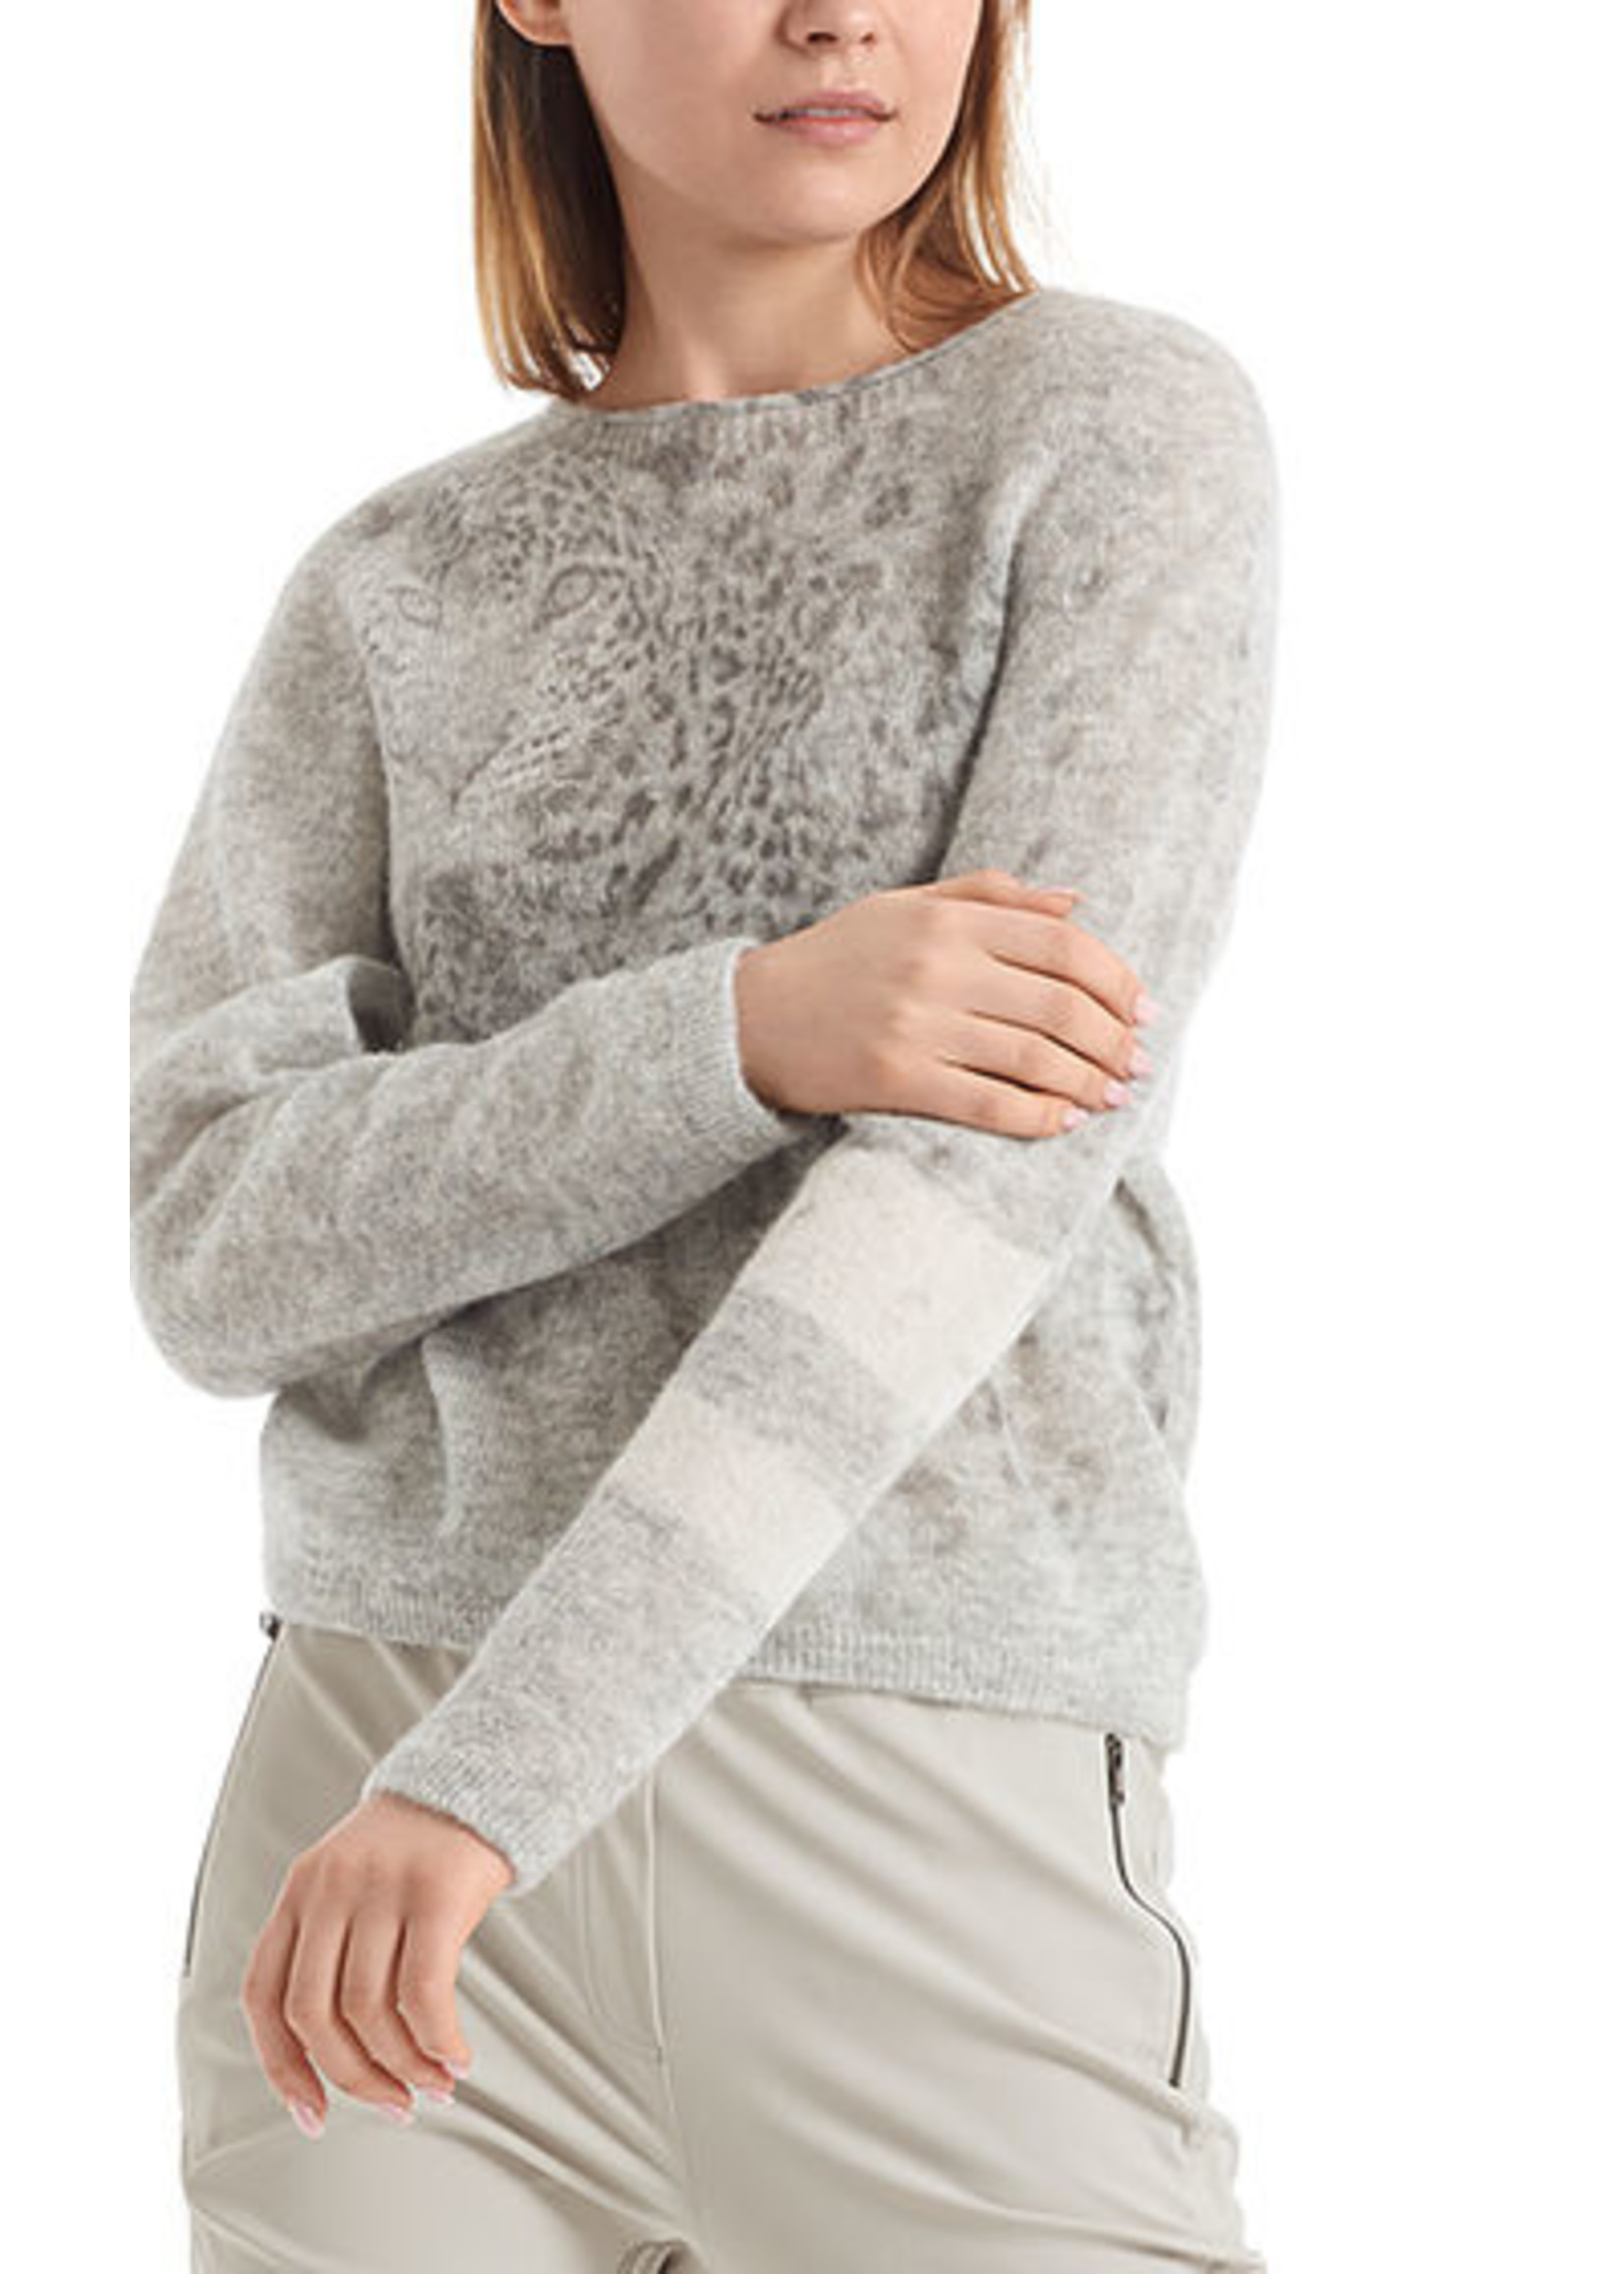 Marccain Sports Sweater RS 41.12 M07 silver grey